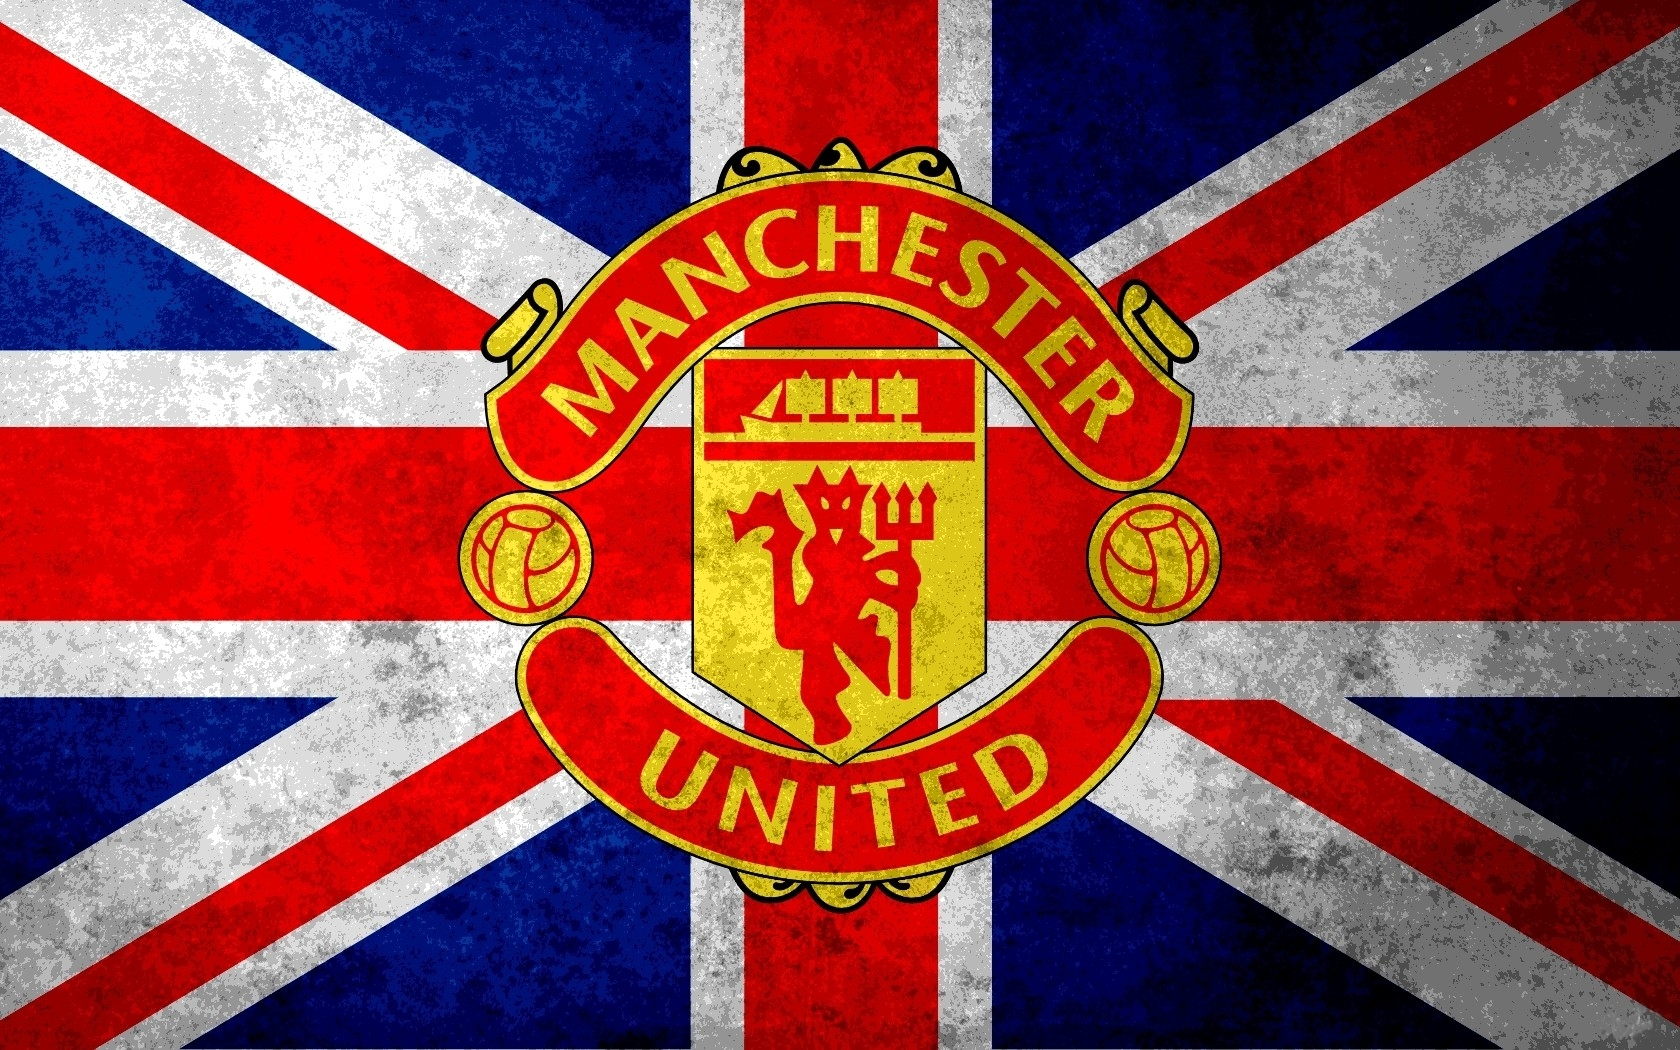 Manchester united logo 3 manchester united wallpaper - Cool man united wallpapers ...